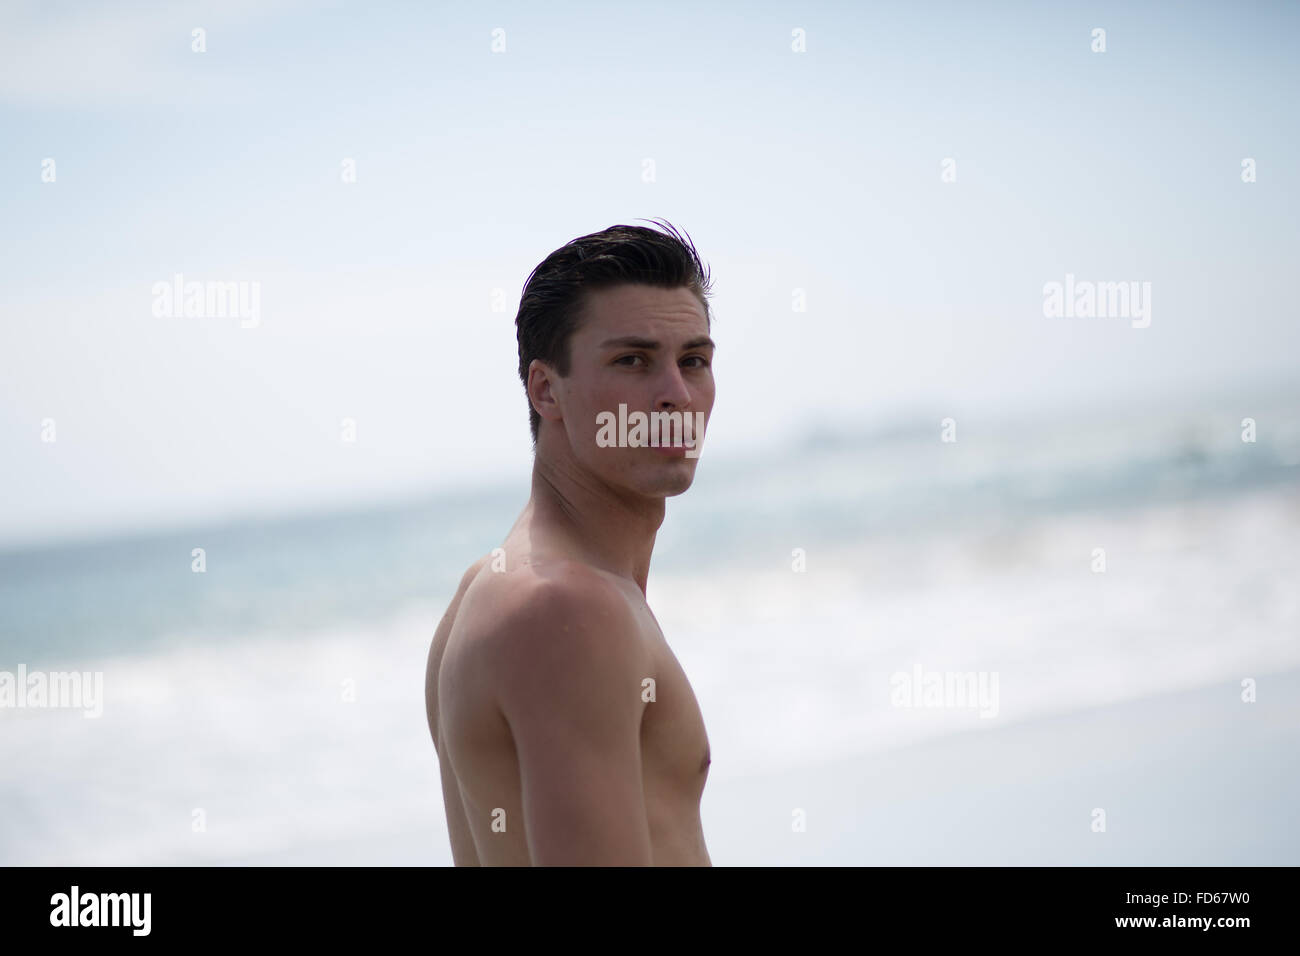 Portrait Of Handsome Young Man Standing At Beach - Stock Image